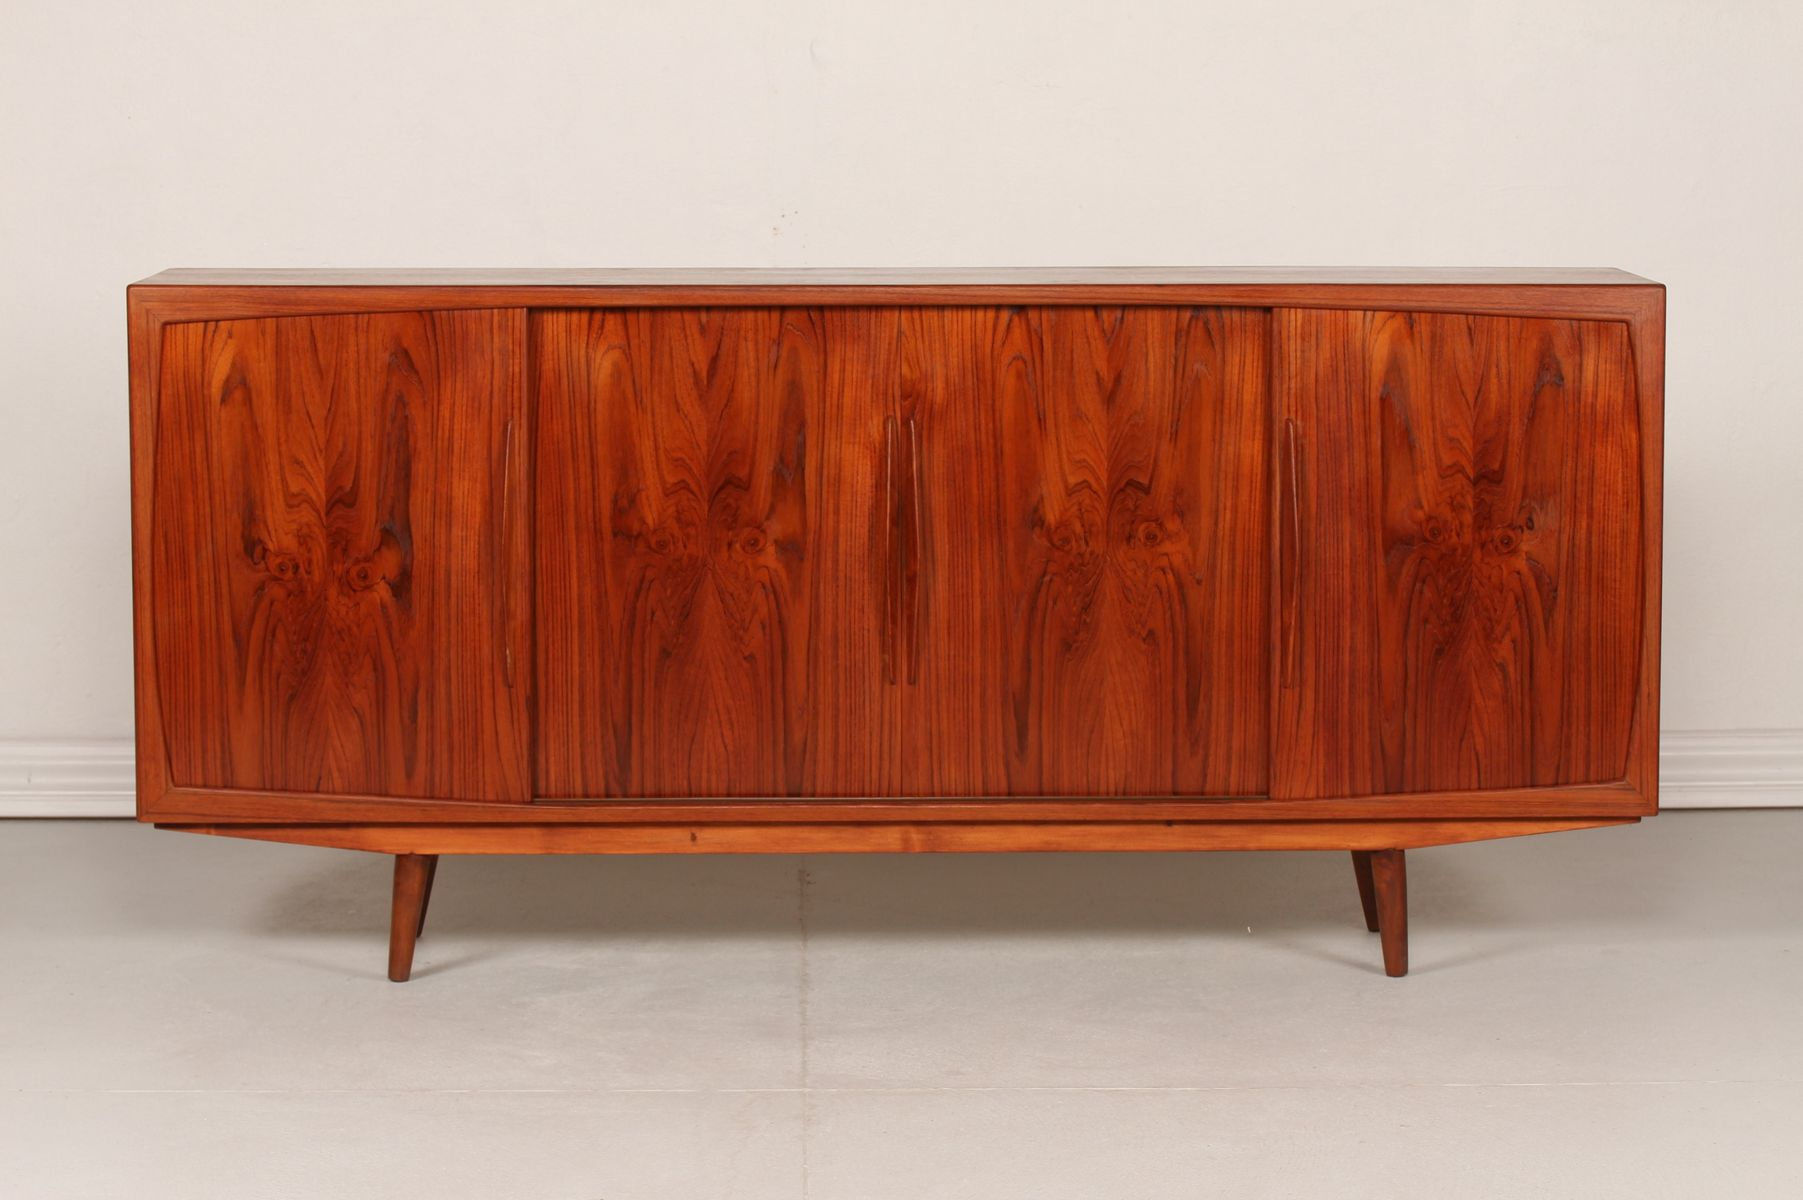 d nisches mid century teak sideboard mit 4 t ren 1950er bei pamono kaufen. Black Bedroom Furniture Sets. Home Design Ideas